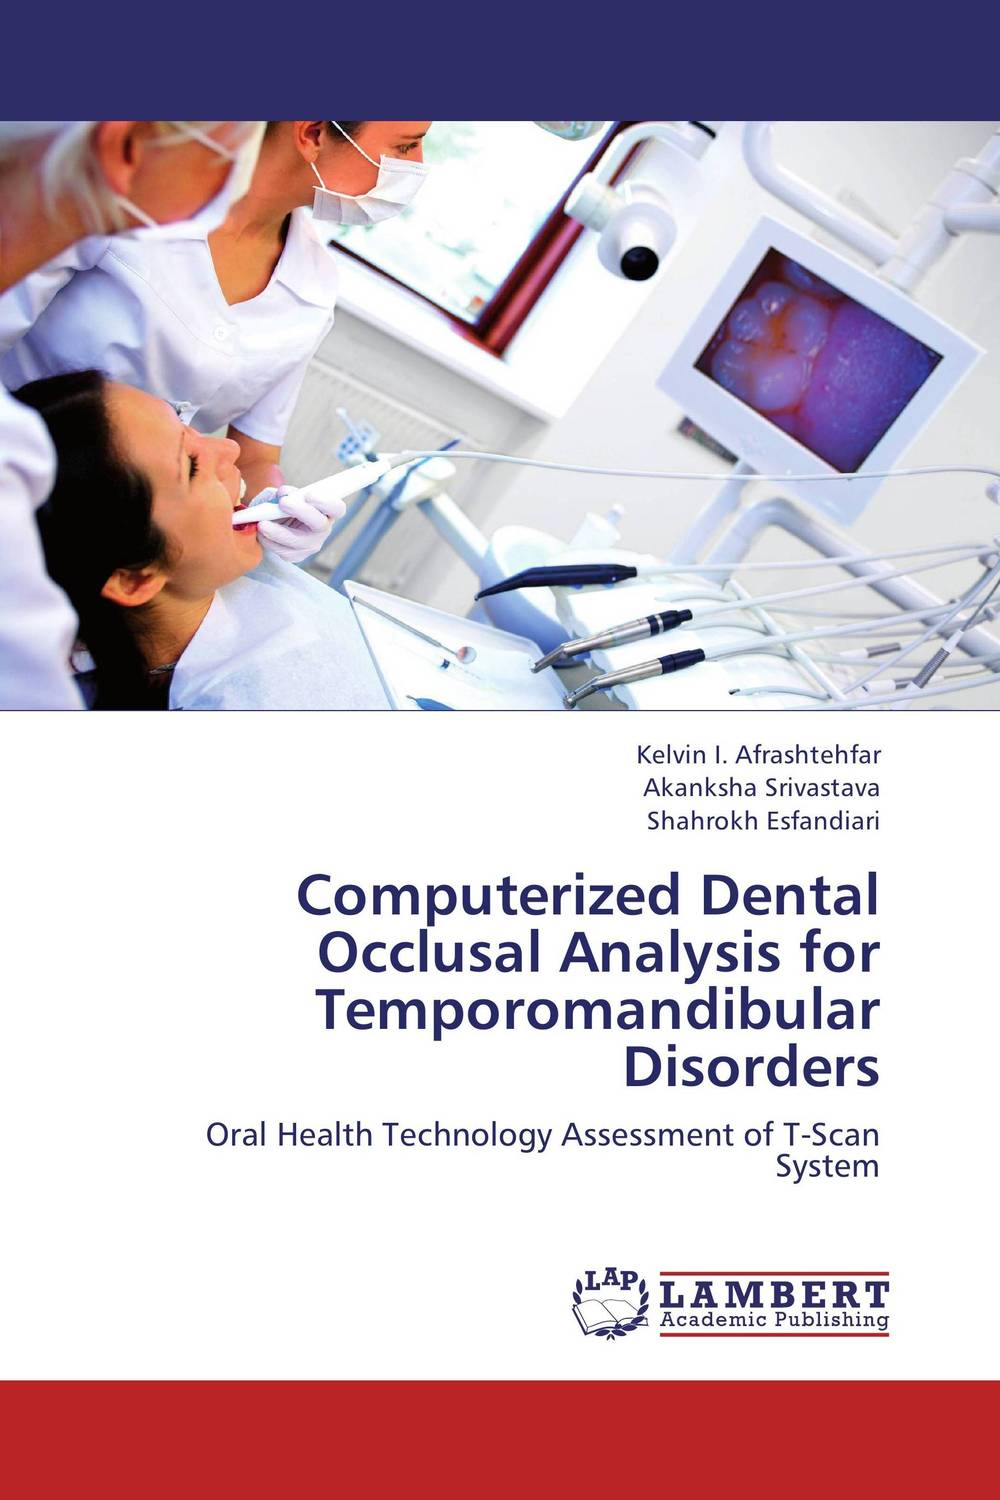 Computerized Dental Occlusal Analysis for Temporomandibular Disorders temporomandibular disorder